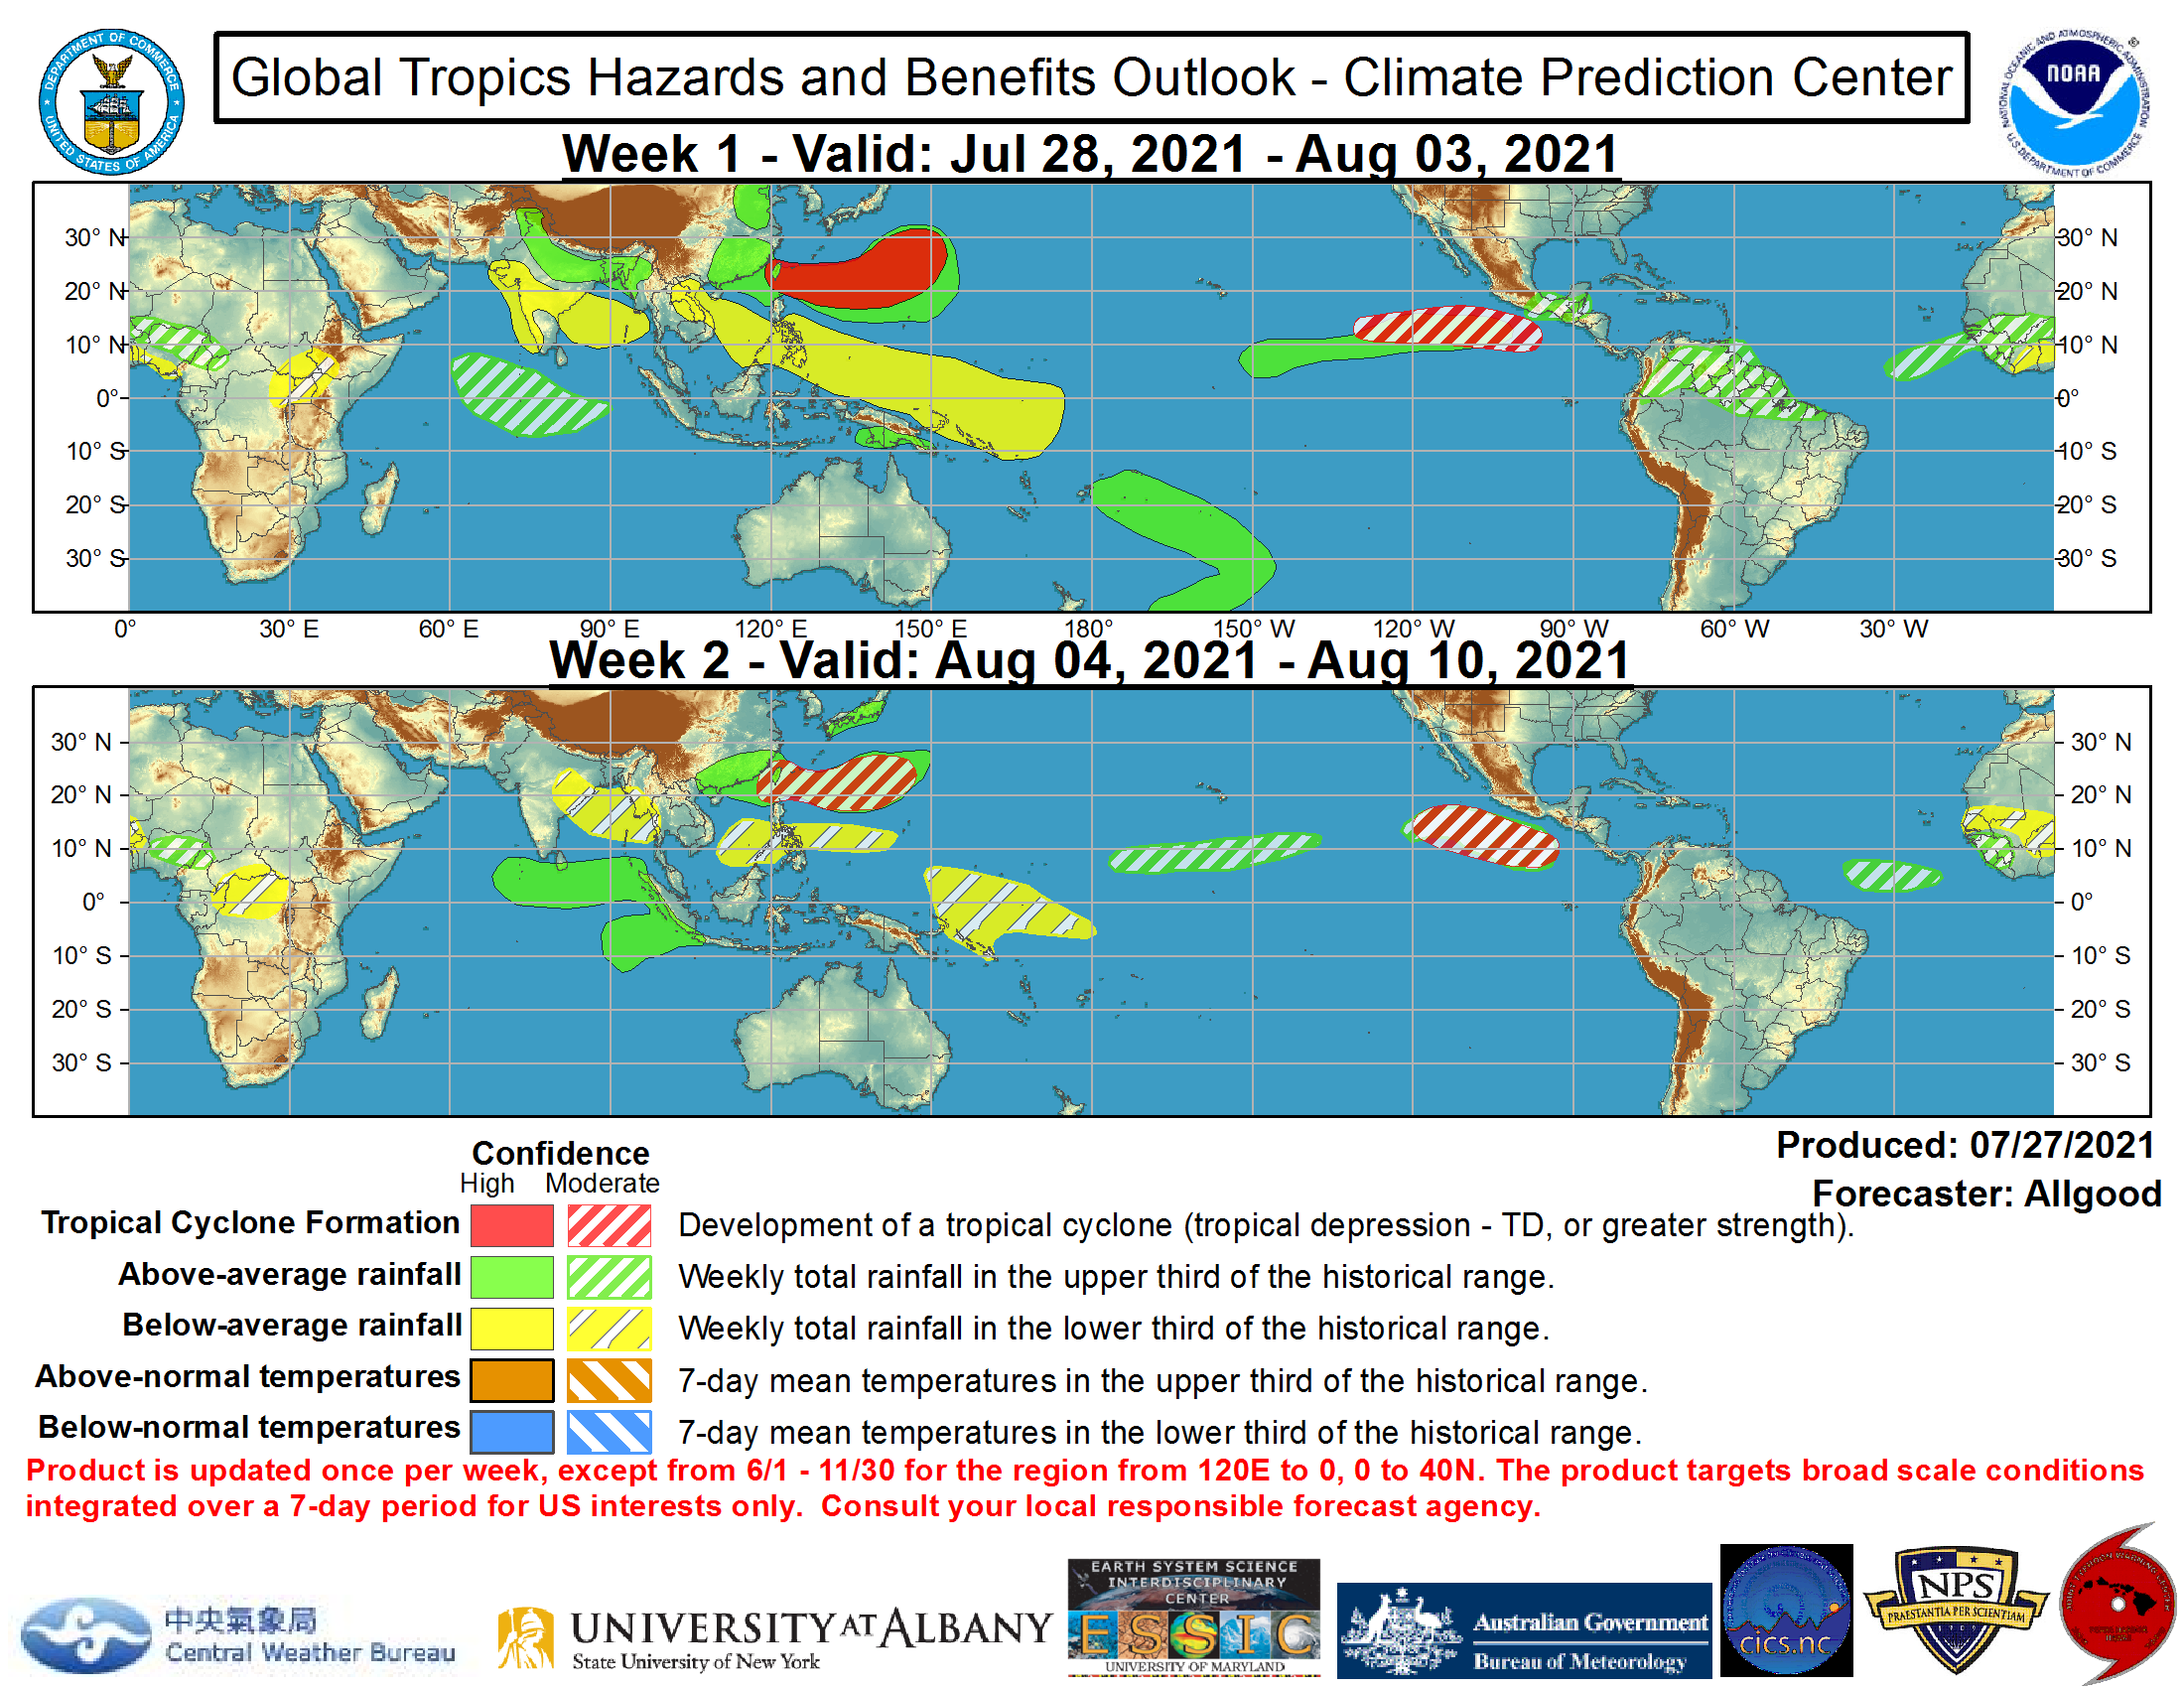 The precipitation outlook during the next two weeks is based on a consensus of GEFS, CFS, and ECMWF guidance, with some consideration given to precipitation composites based on prior MJO events. For hazardous weather concerns during the next two weeks across the U.S., please refer to your local NWS Forecast Office, the Weather Prediction Center's Medium Range Hazards Forecast, and CPC's Week-2 Hazards Outlook. Forecasts over Africa are made in consultation with the International Desk at CPC and can represent local-scale conditions in addition to global scale variability. NOAA.